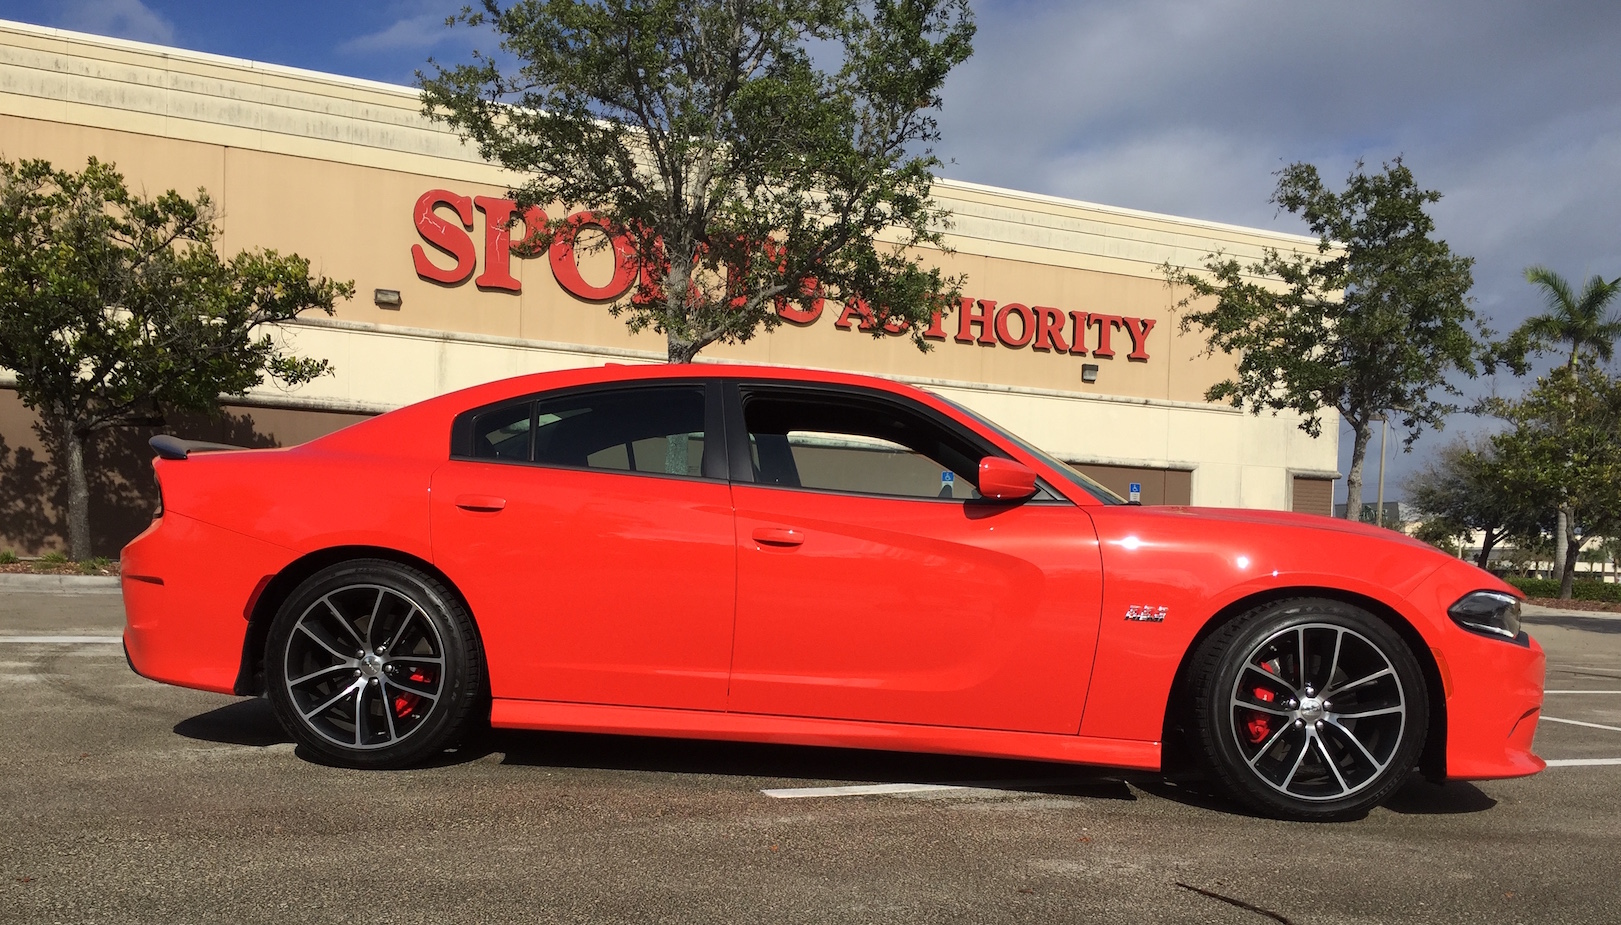 2016 dodge charger r t scat pack sports authority in the sunshine state automotive rhythms. Black Bedroom Furniture Sets. Home Design Ideas